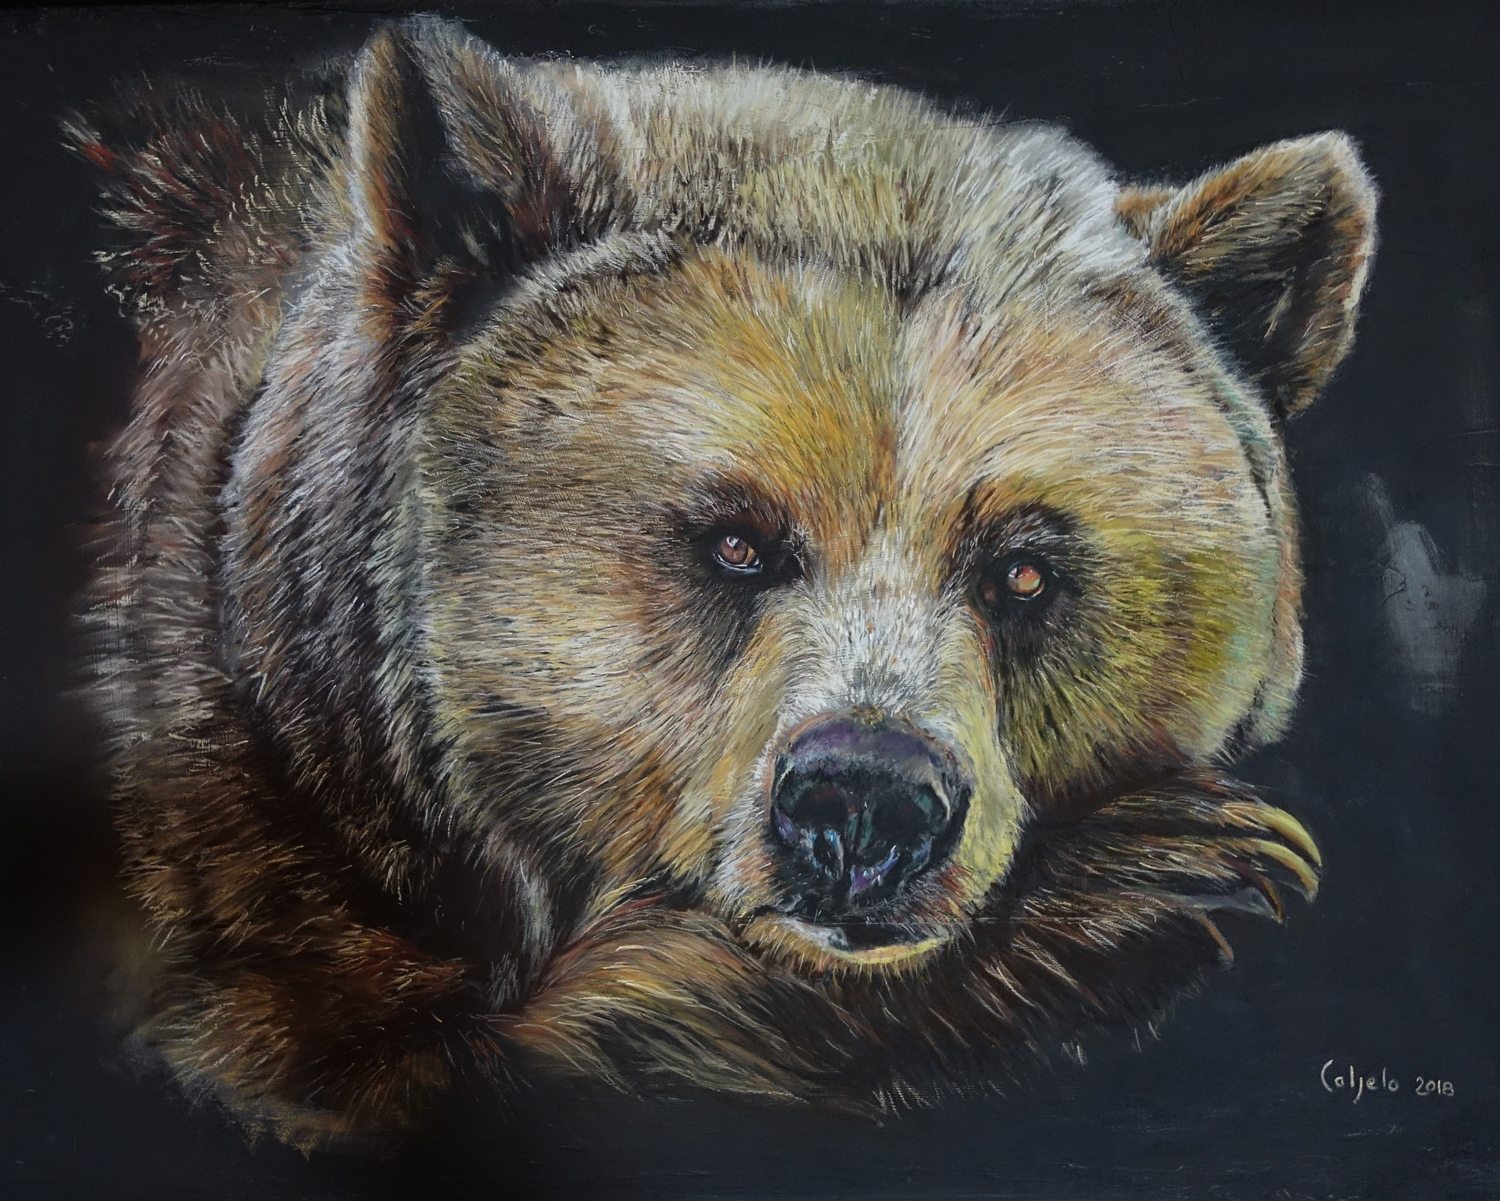 60x80 - Repos d'ours